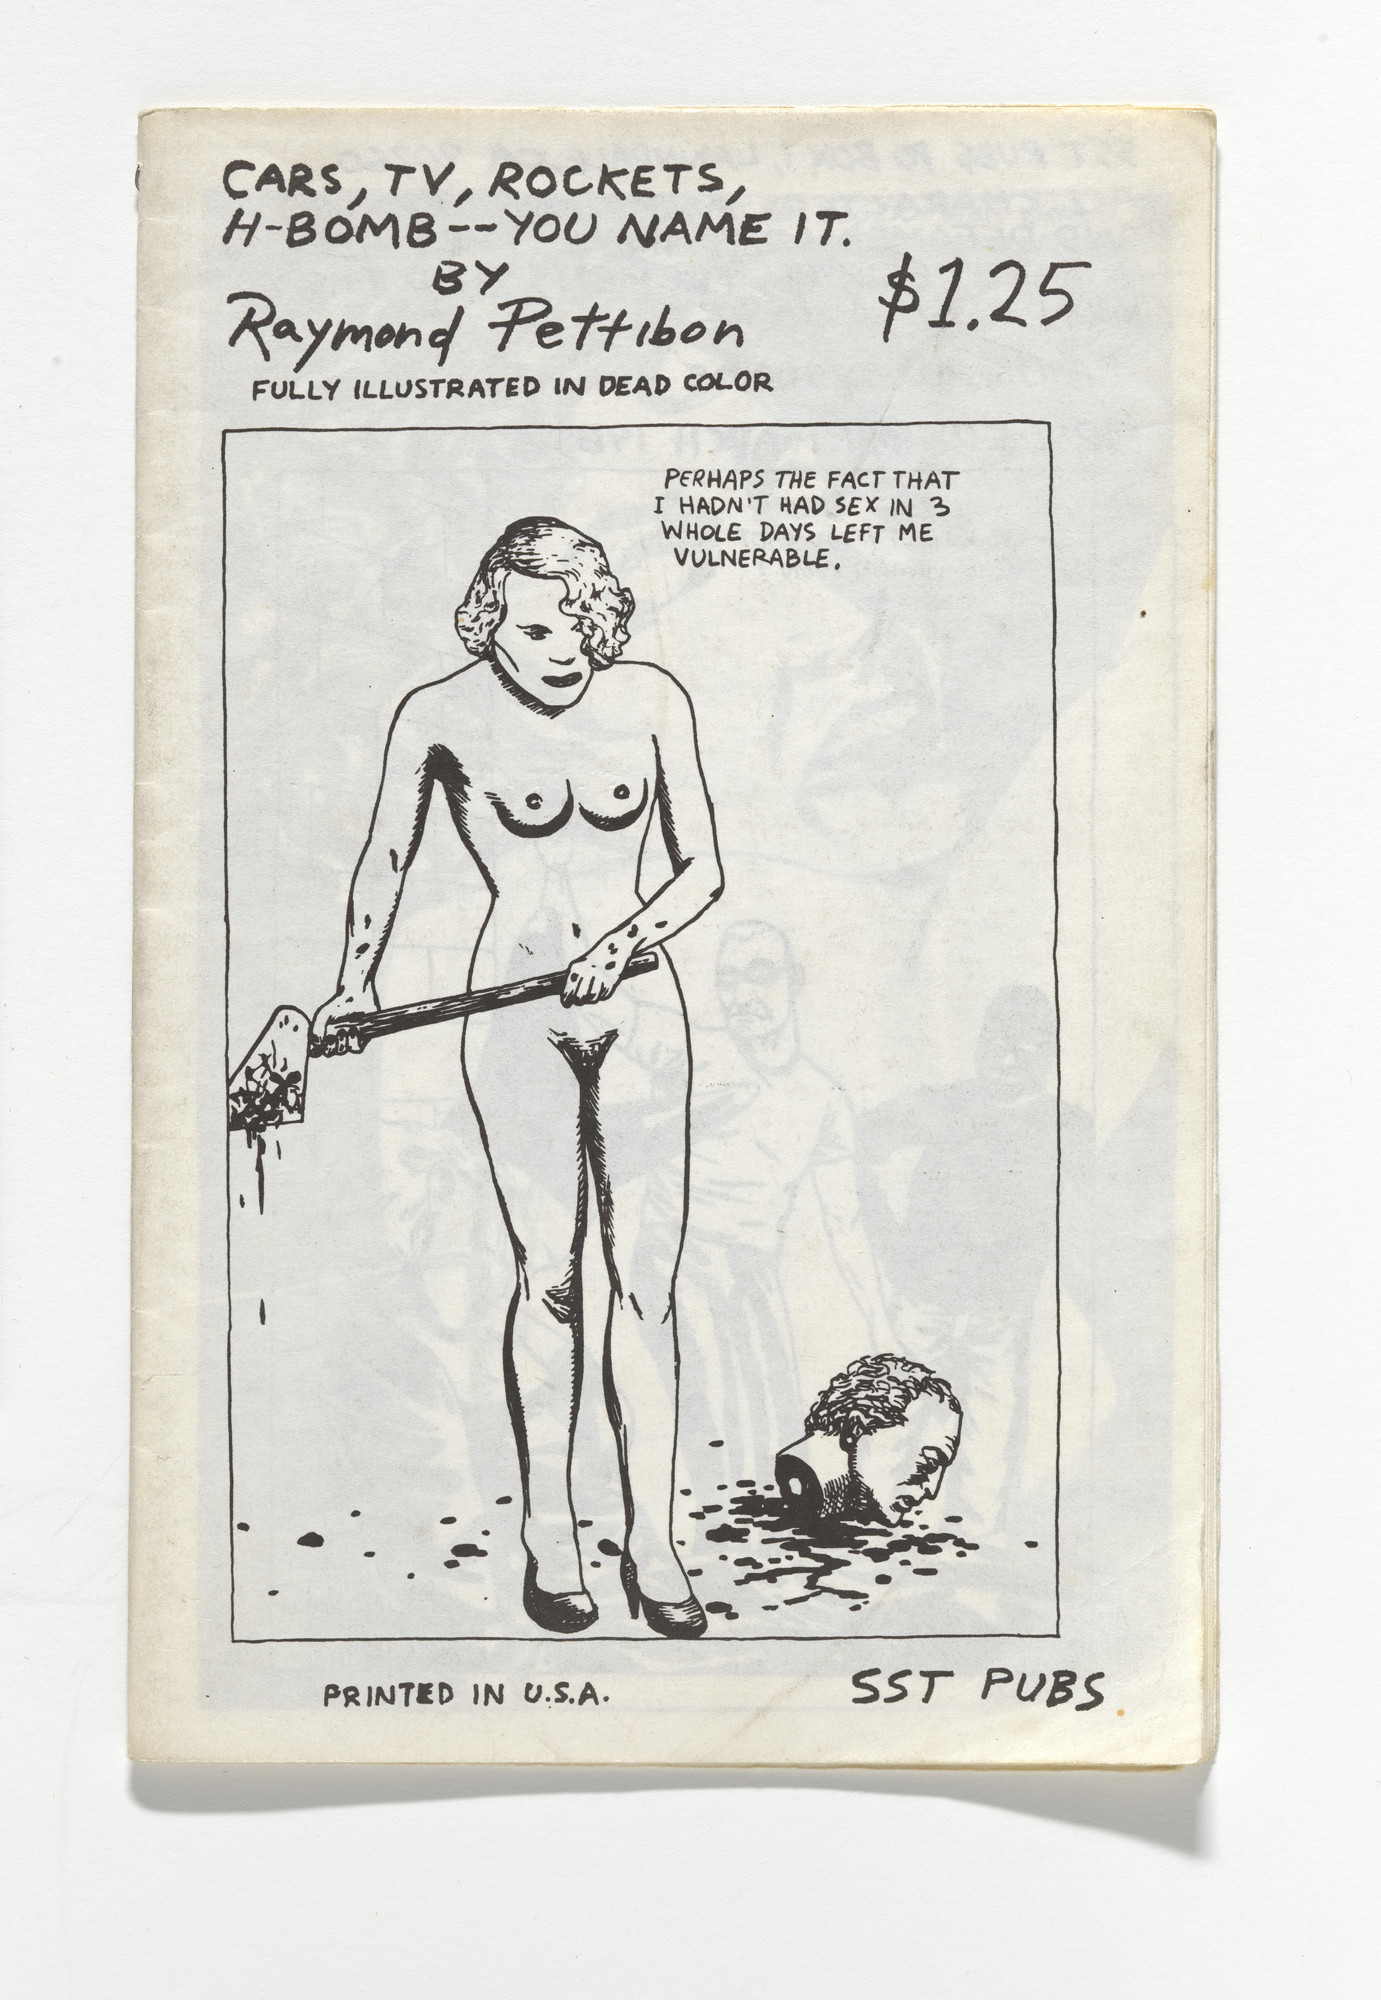 Raymond Pettibon. Cars, TV Rockets, H-Bomb -- You Name It. 1985